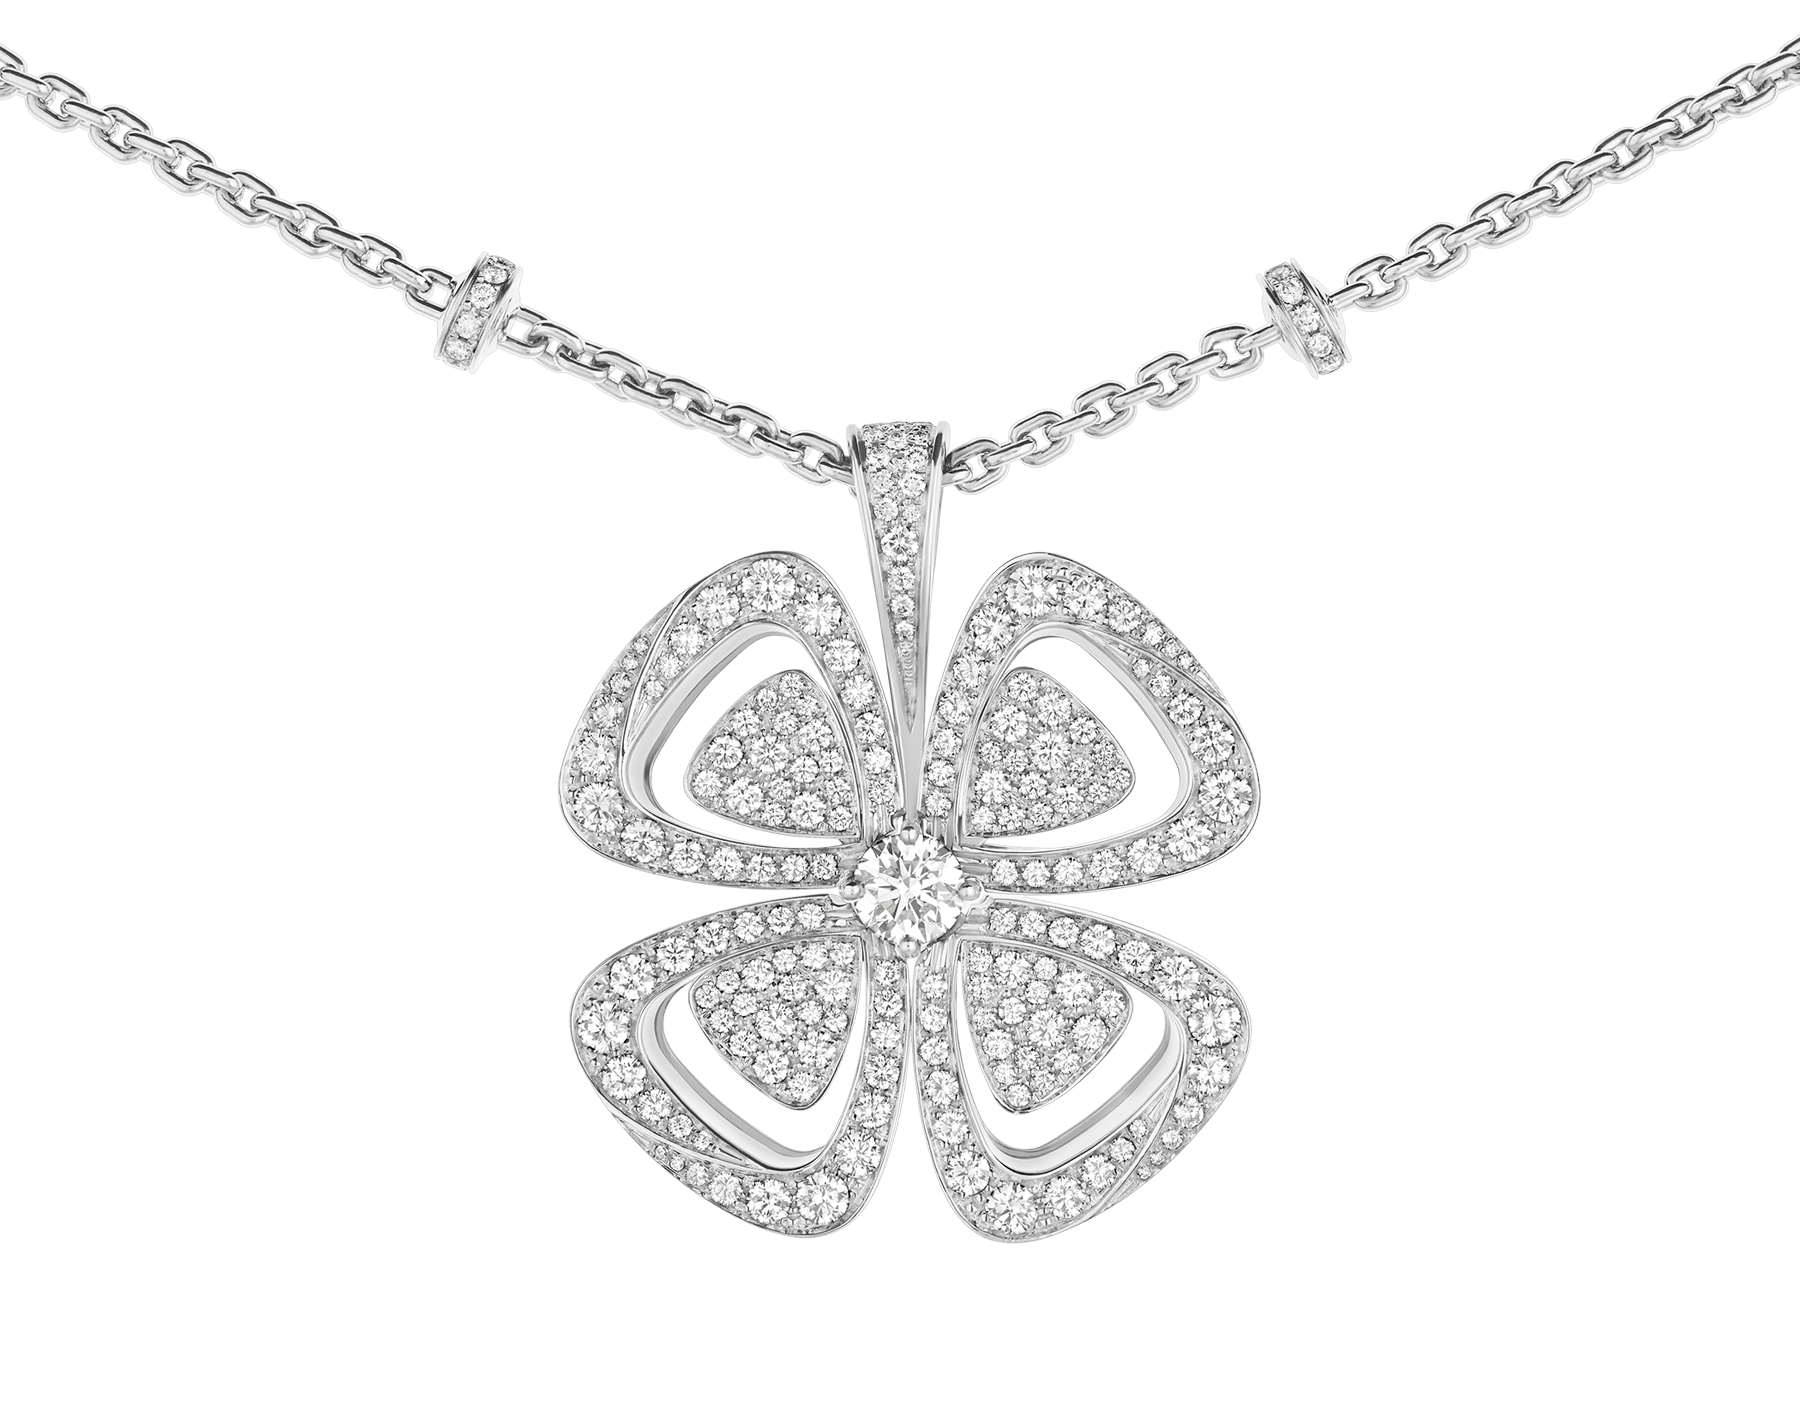 Fiorever 18 kt white gold necklace set with a central round brilliant-cut diamond (0.70 ct) and pavé diamonds (4.63 ct) 357219 image 3